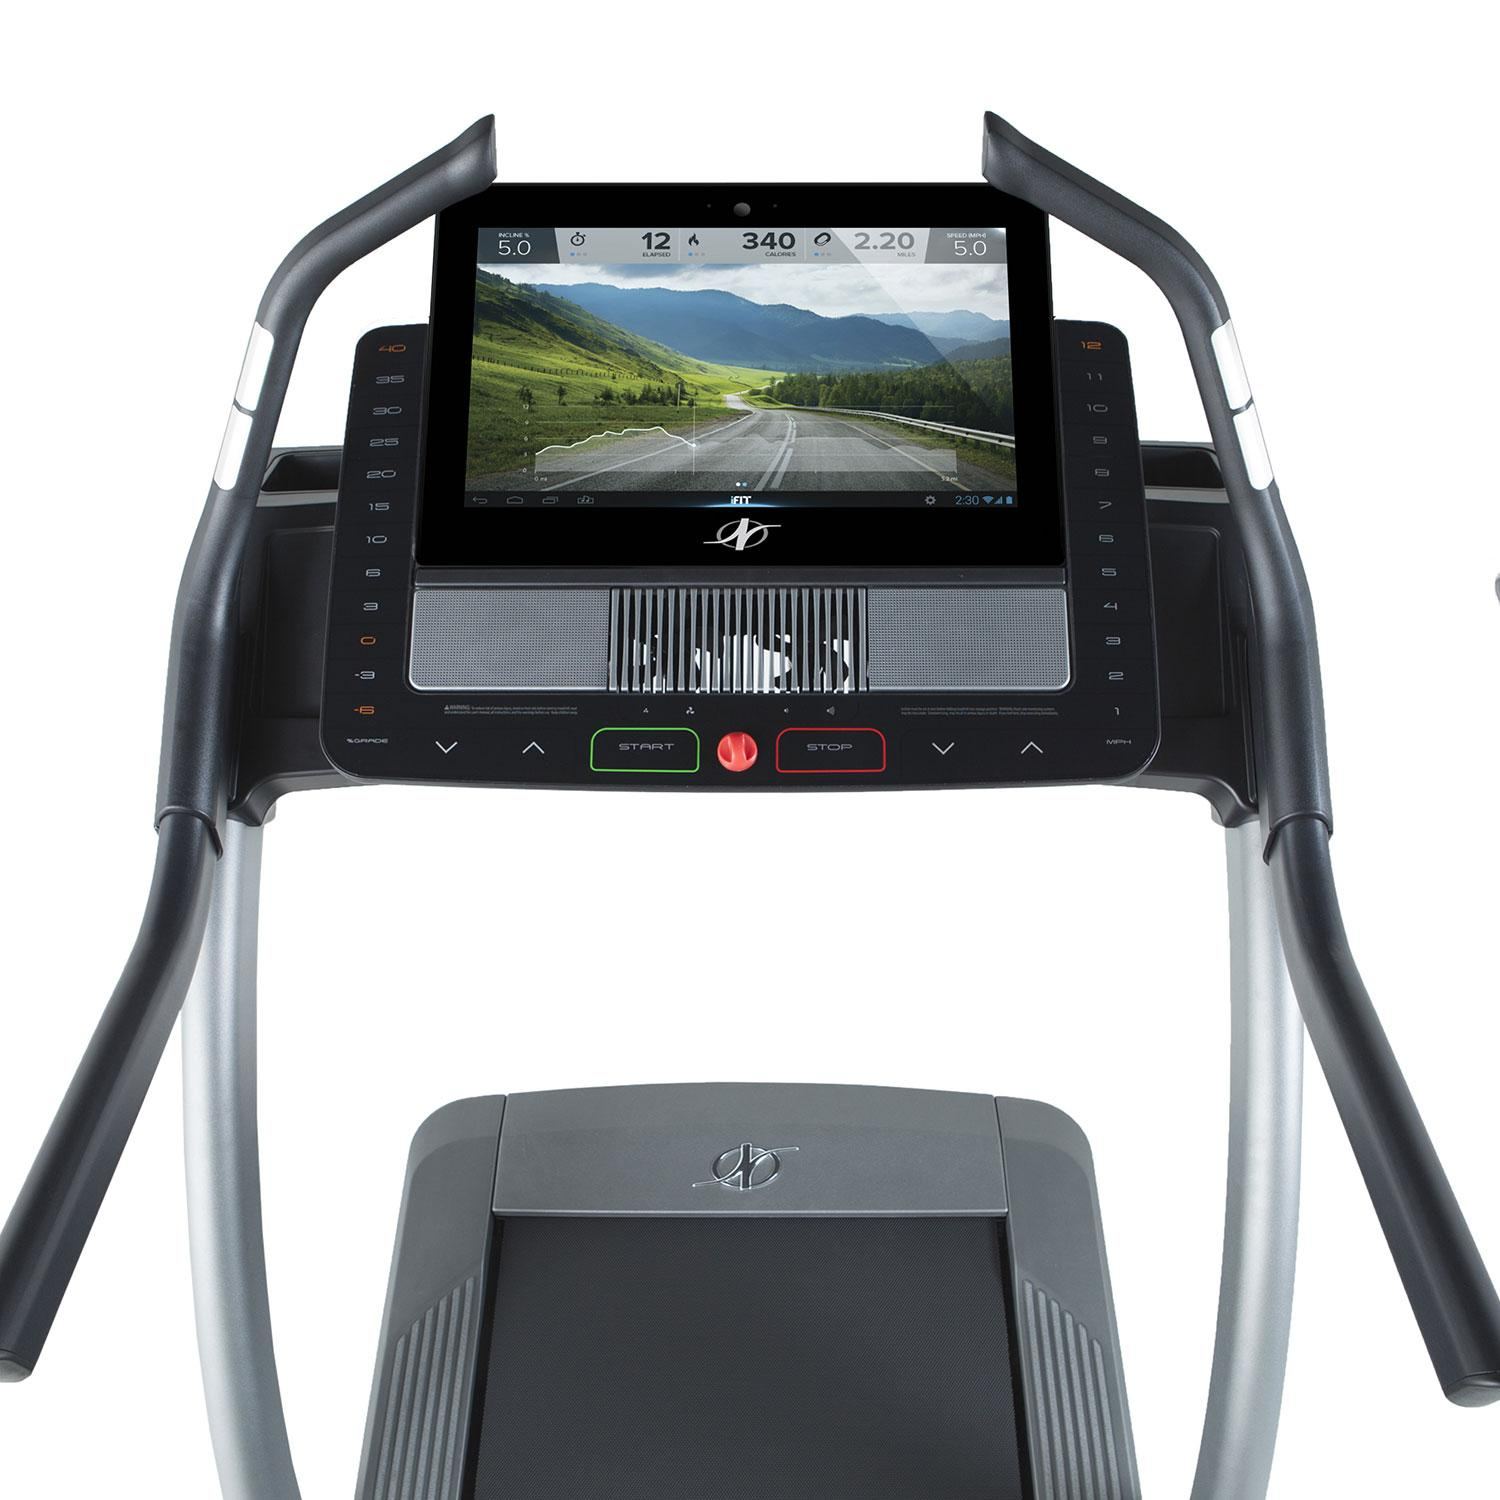 Беговая дорожка NordicTrack Incline Trainer X22i, фото №3